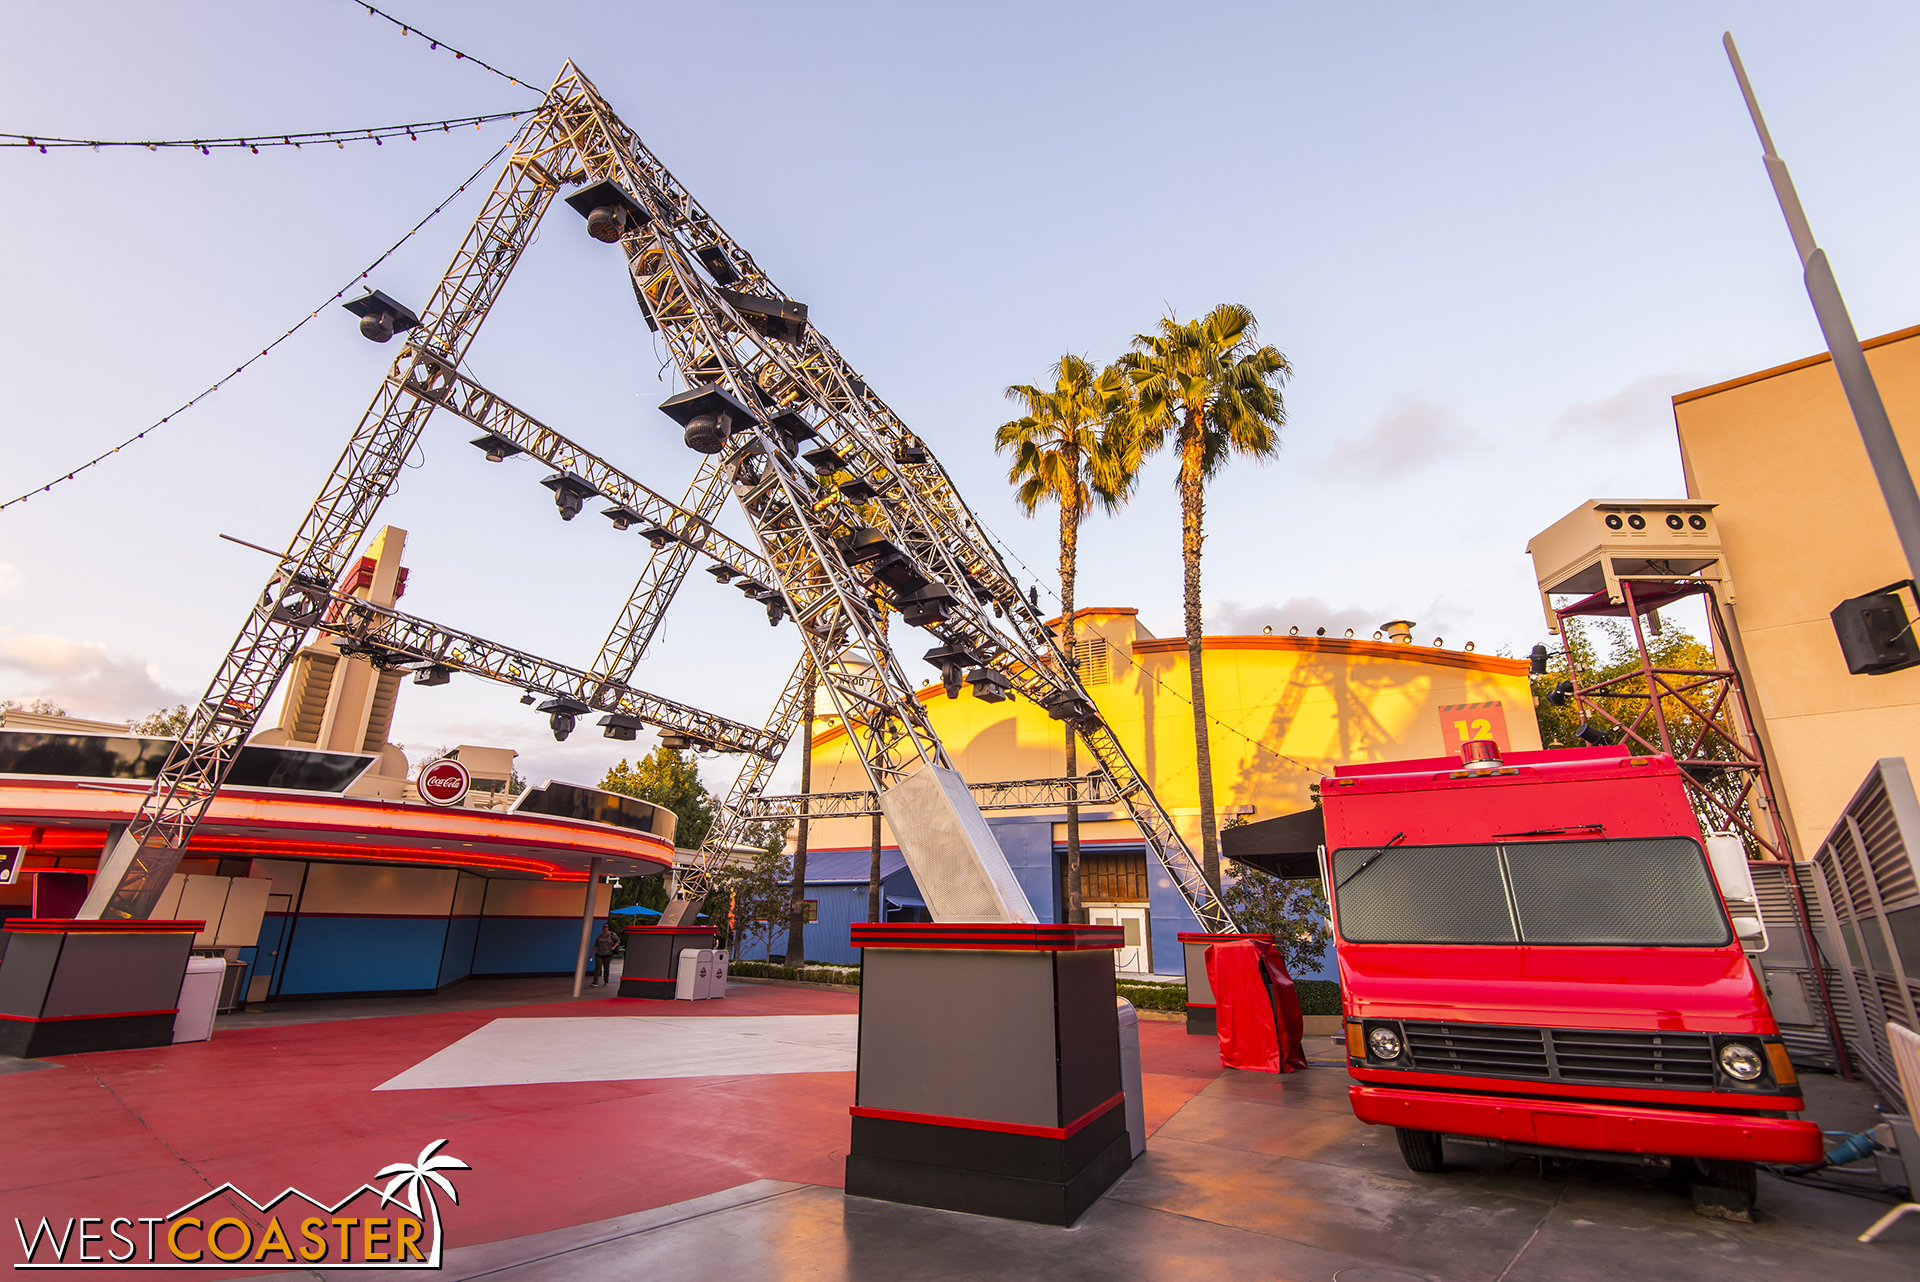 A week after the end of Mad Tea, the backlot had been stripped back to generic structure.